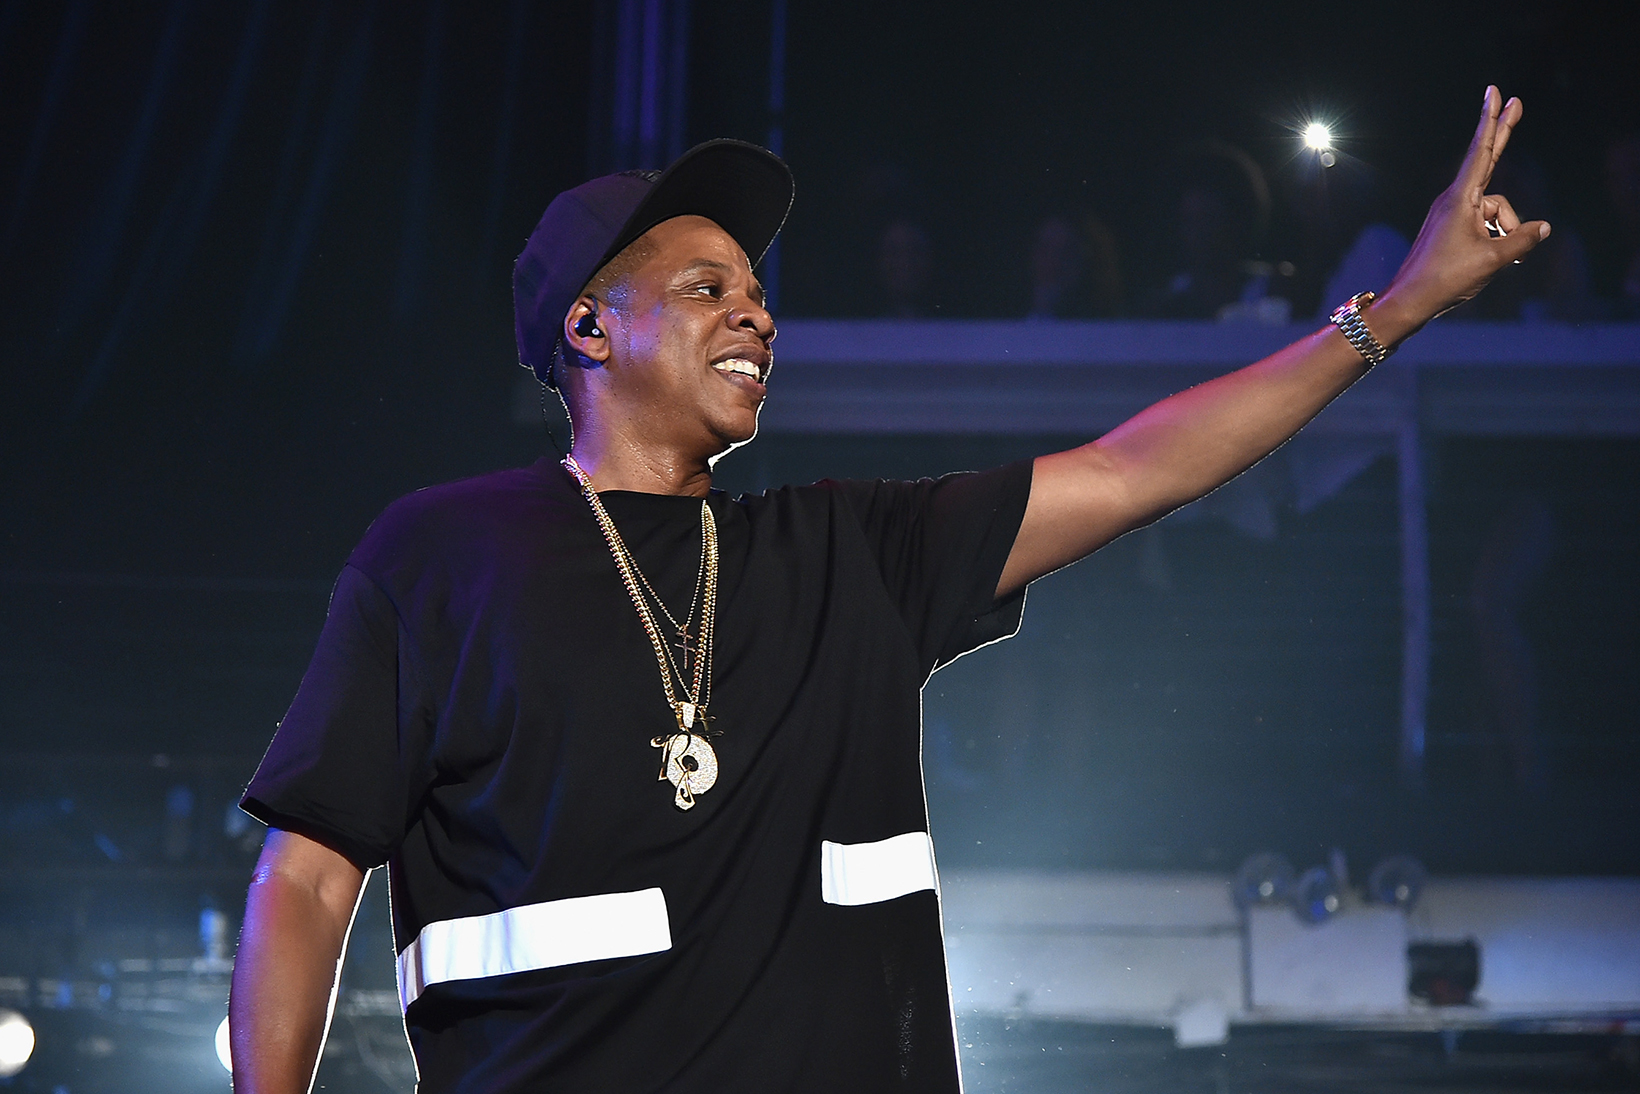 TIDAL Fires Its CFO and COO